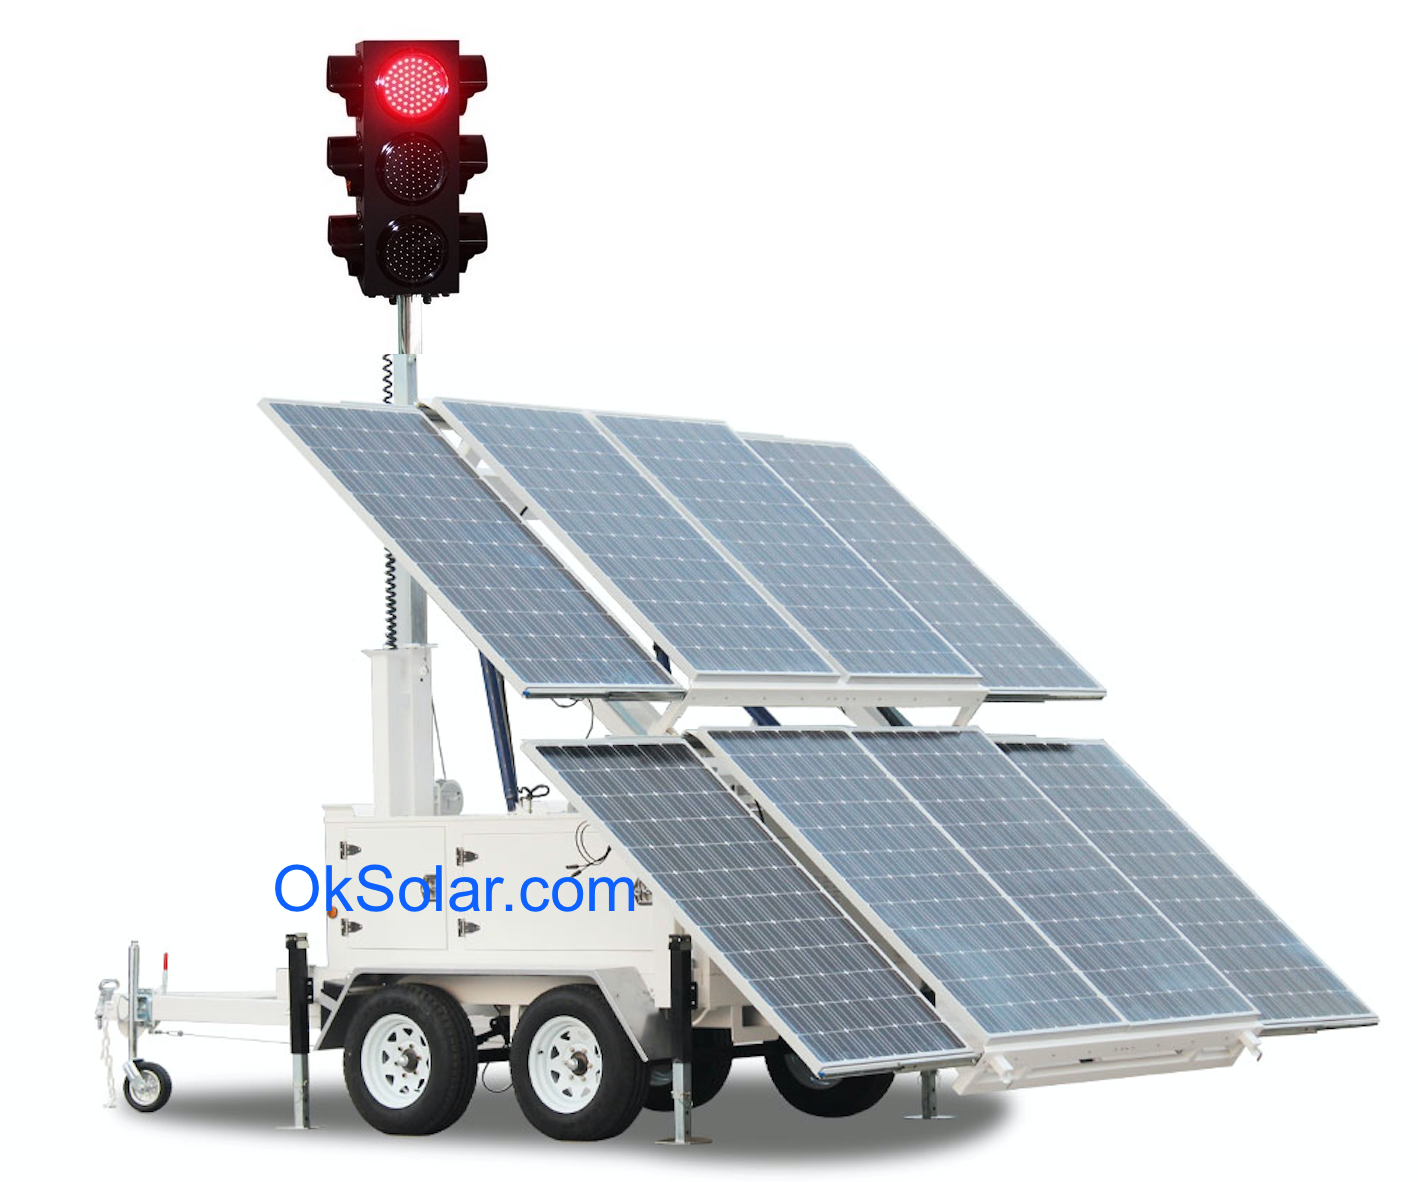 4 way Solar Portable Traffic Light Controller Trailer Mounted | Solar Traffic Signal Light Portable, 4 Way Solar Traffic Signal Control Portable, 4 Way Solar Traffic Signal control, Solar Traffic Lights 4 Ways Traffic Signal Control, Solar Powered Traffic Warning Light, 4 Way Traffic Signal control, Remote Control Portable Traffic Signal Lights, temporary four ways solar traffic light